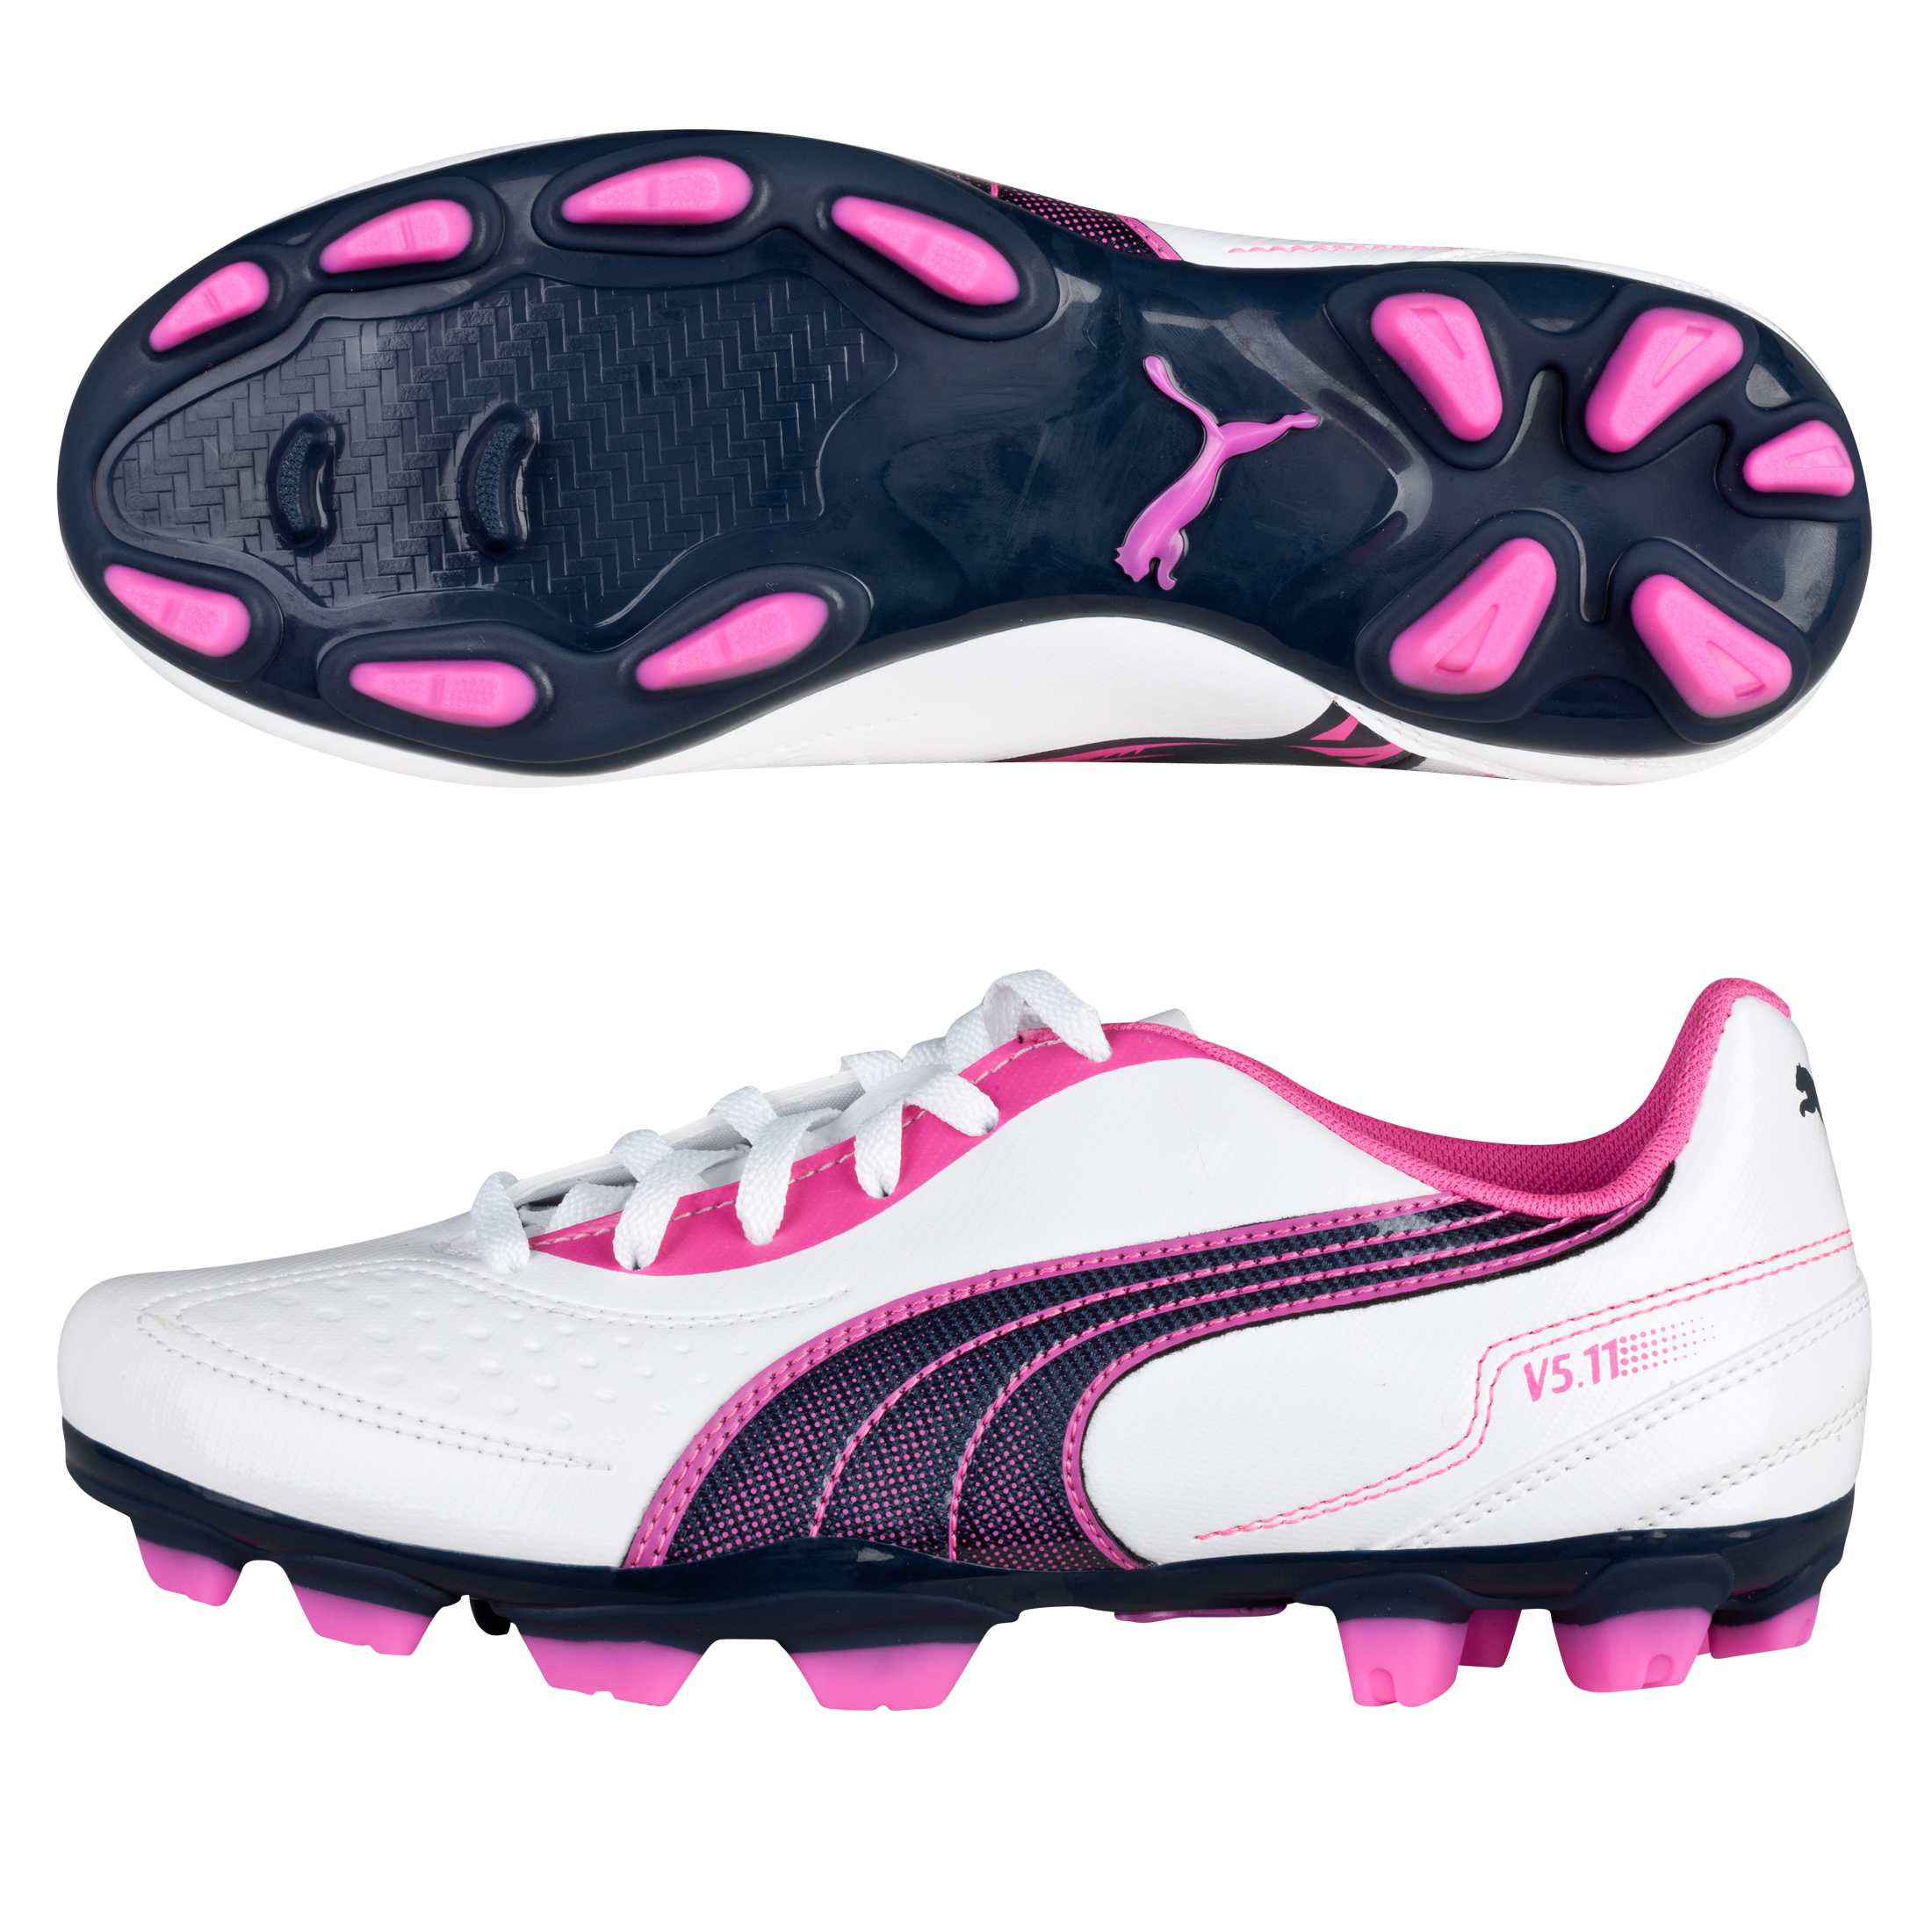 Puma v5.11 i Firm Ground Football Boots - White/New Navy/Fluo Pink - Kids